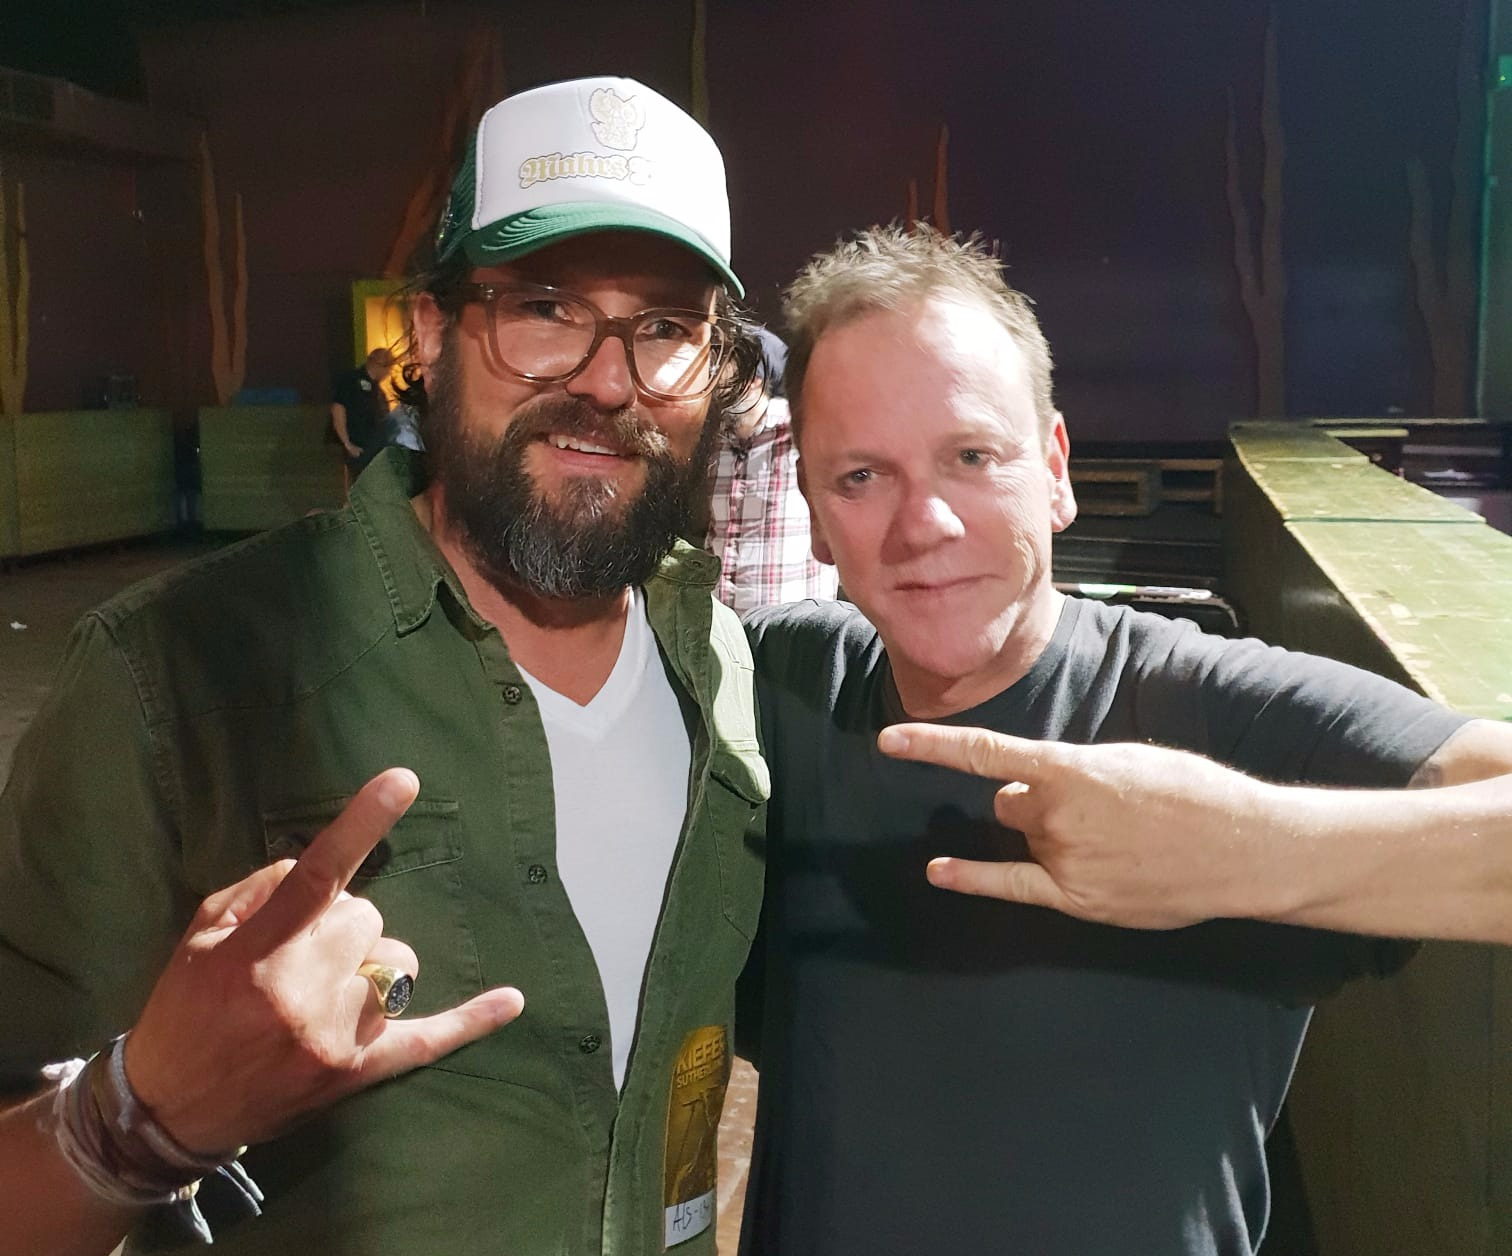 Mahr's Braü meets up with Kiefer Sutherland